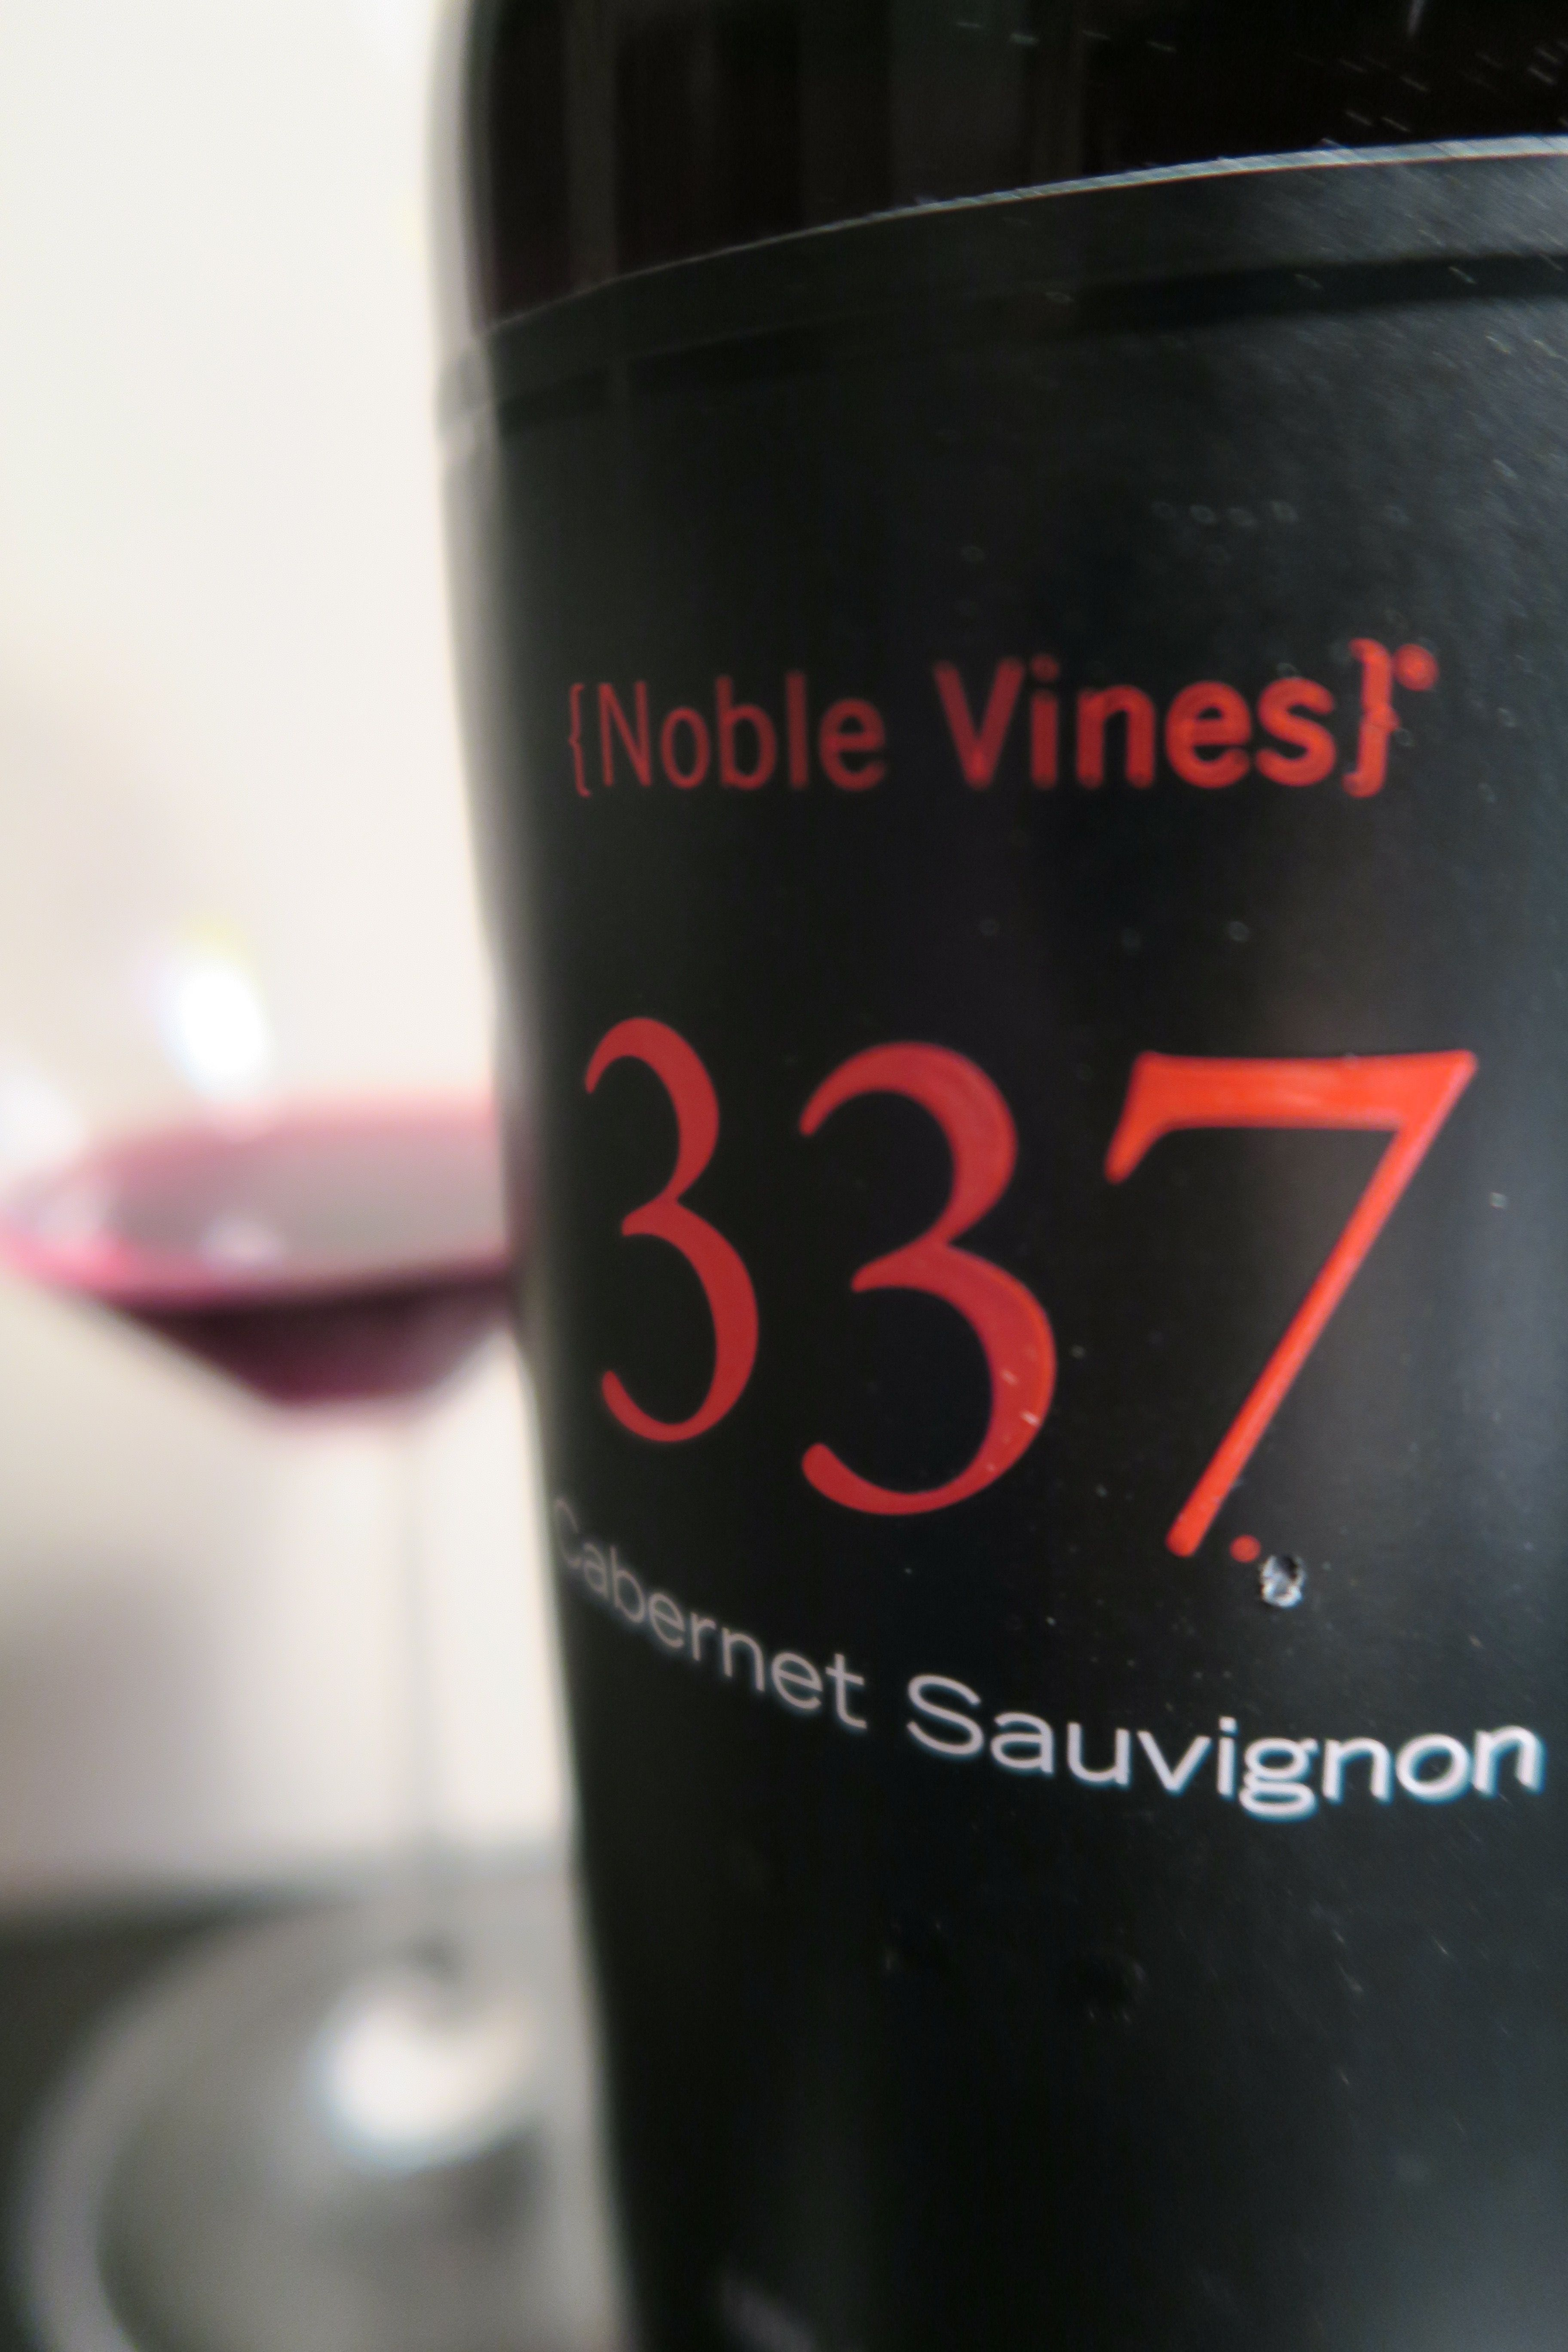 Noble Vines 337 Cab - who knew it would be good!  10$!  Check out the review at - http://winegirlgonewild.com/2015/12/16/holiday-wine-haul-noble-vines-337/